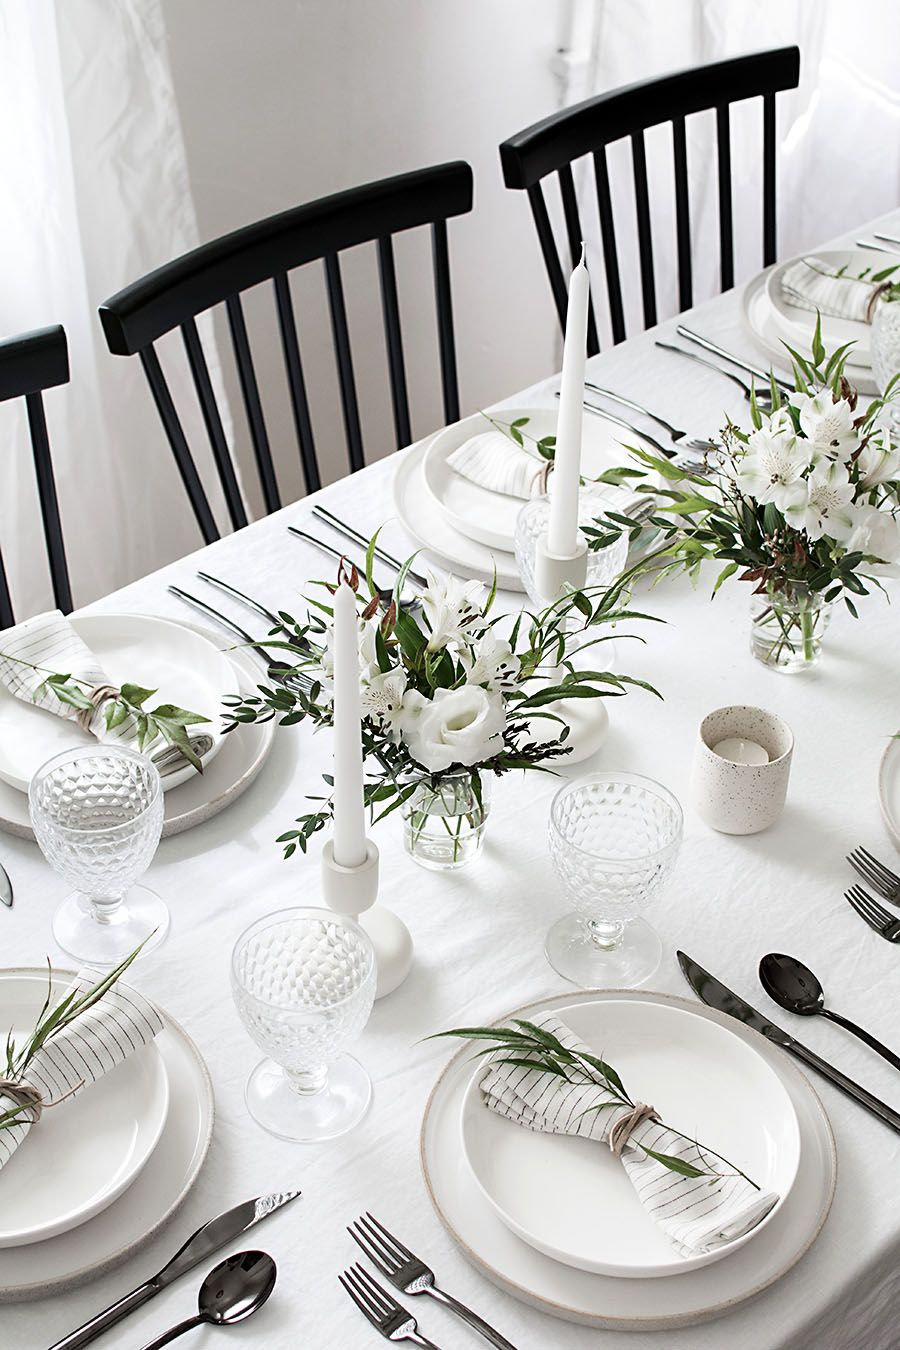 Easy ideas for creating a modern minimal table setting. : tables settings - pezcame.com